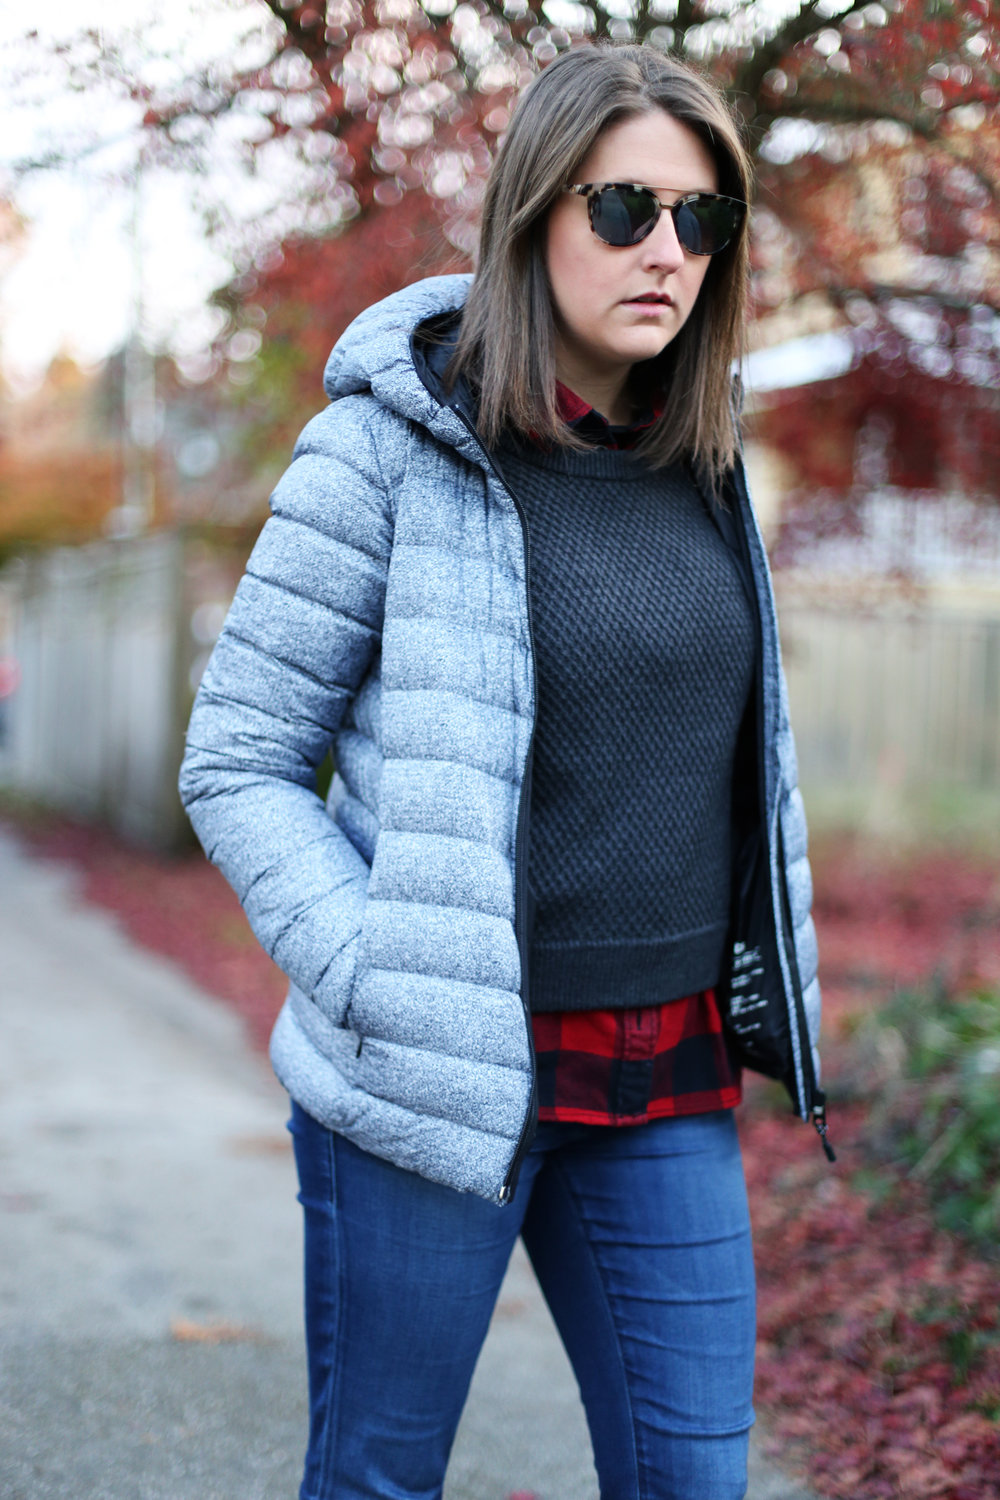 Winter minimalist street style: puffer coat, tortoise shell sunglasses, red and black plaid, and skinny jeans.